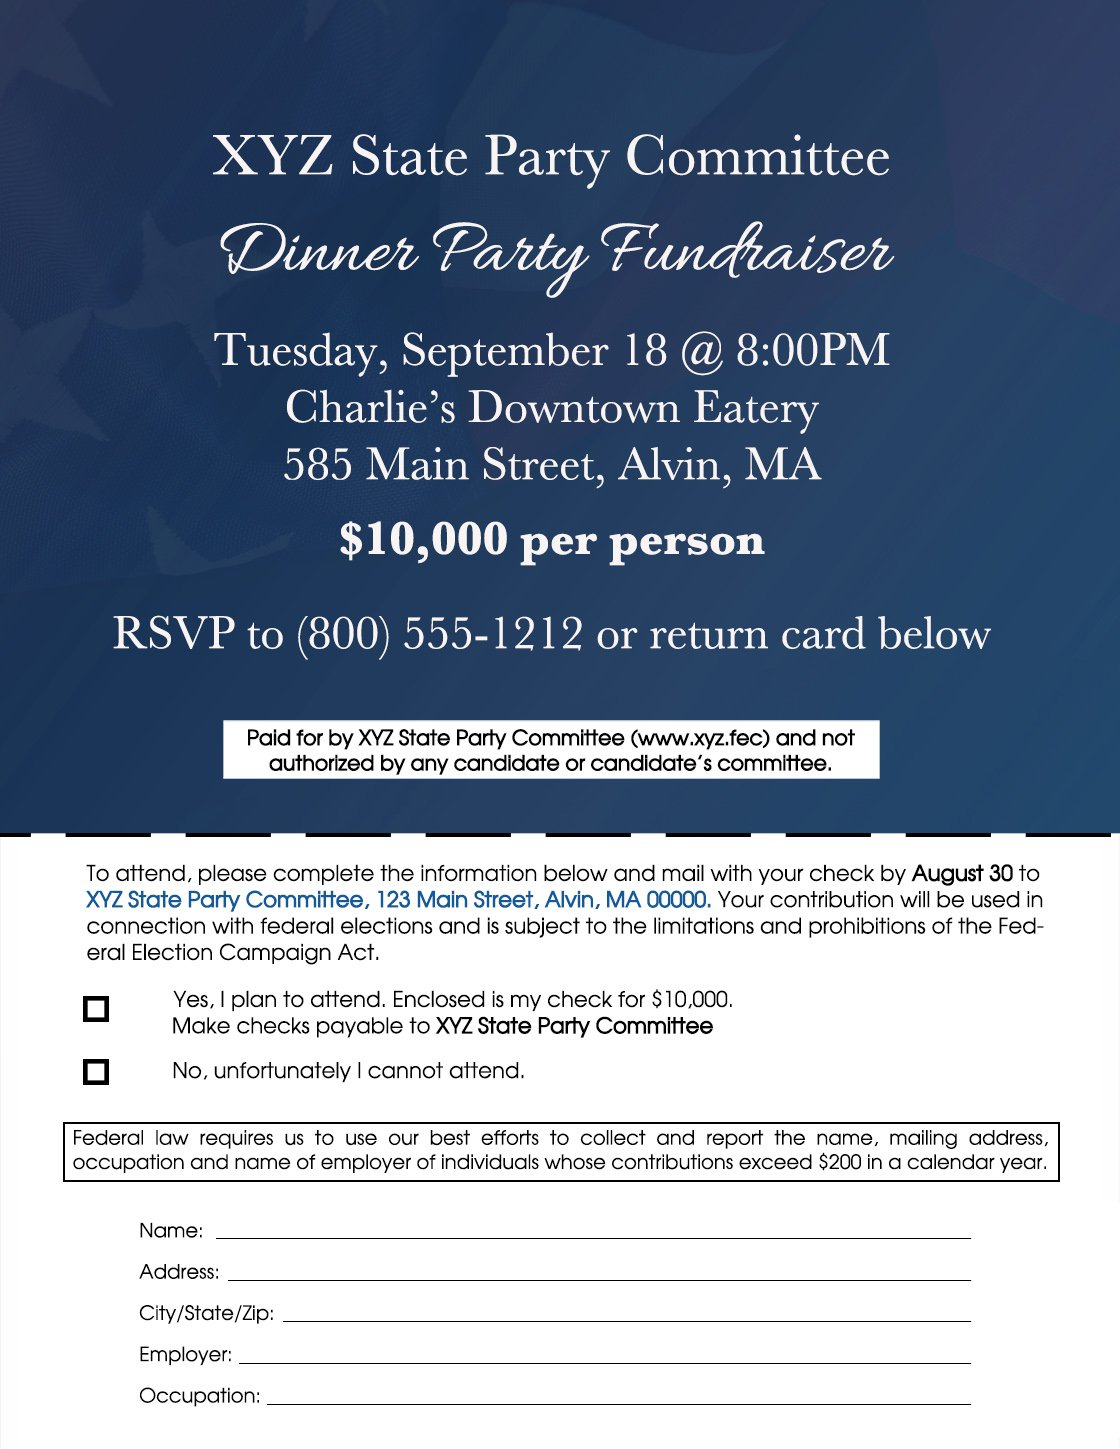 Image of a disclaimer example of a  state party committee's invitation for the party's fundraiser